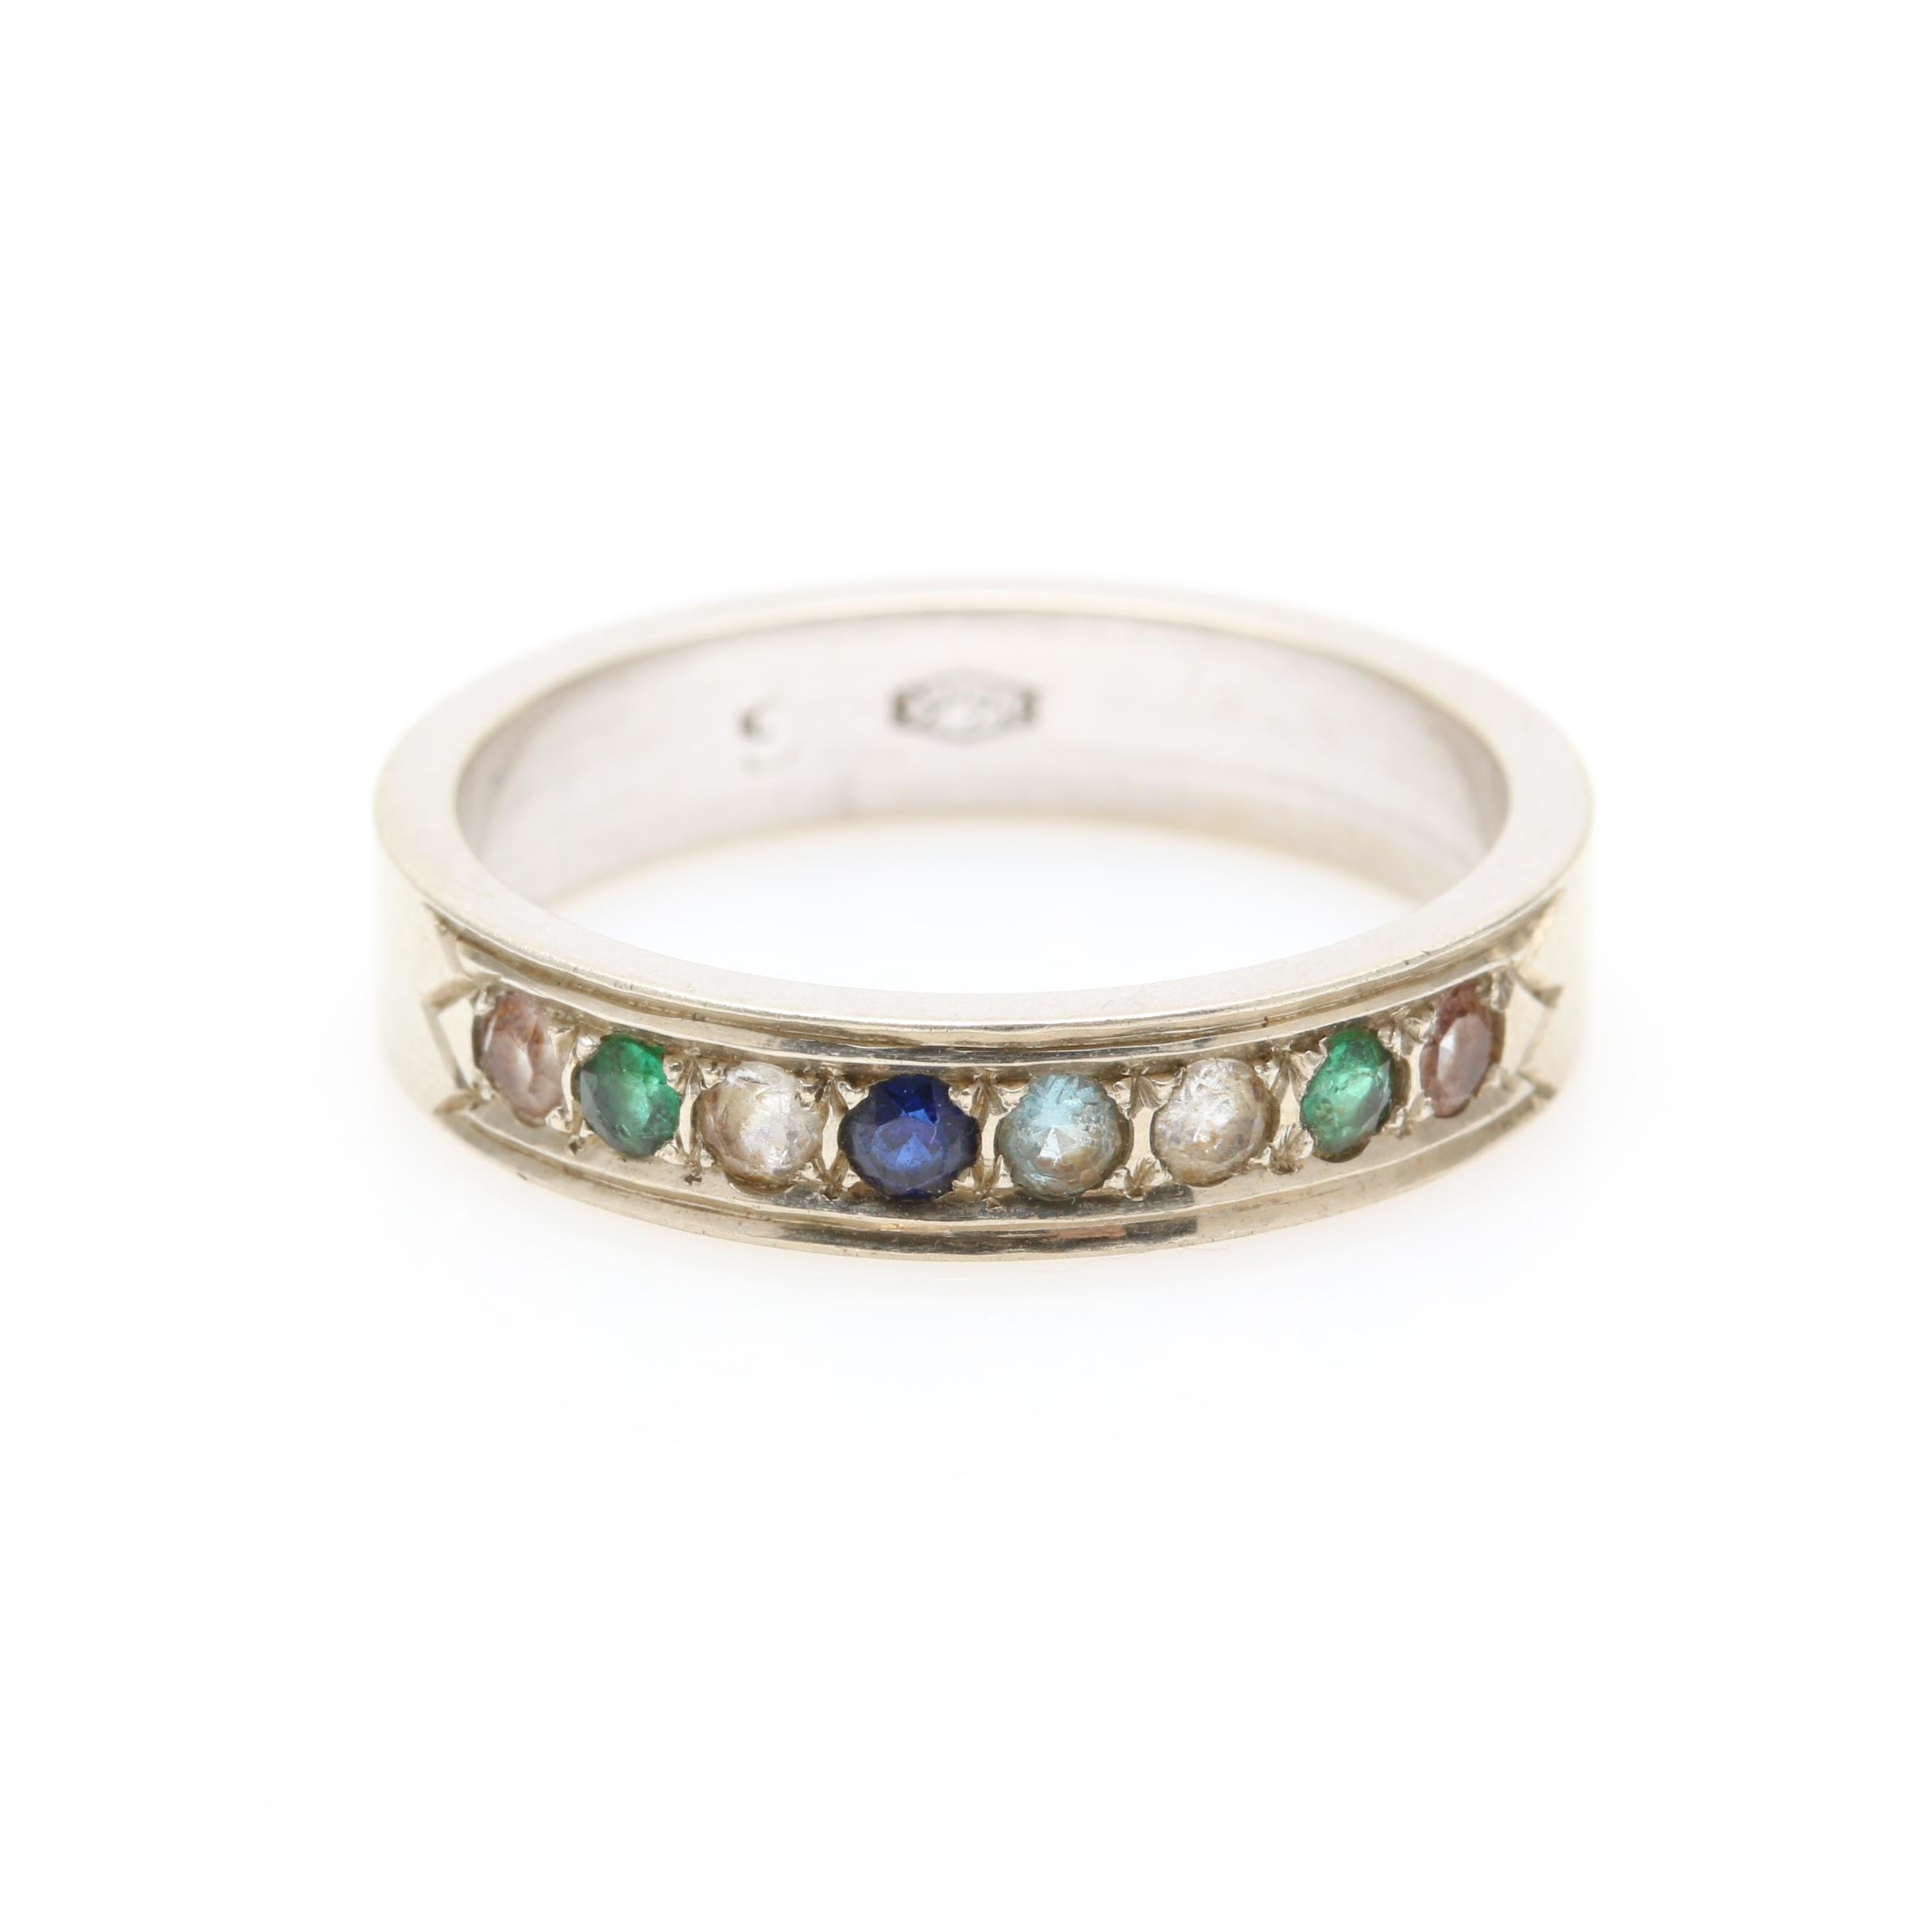 14K White Gold Synthetic Spinel and Synthetic Sapphire Ring